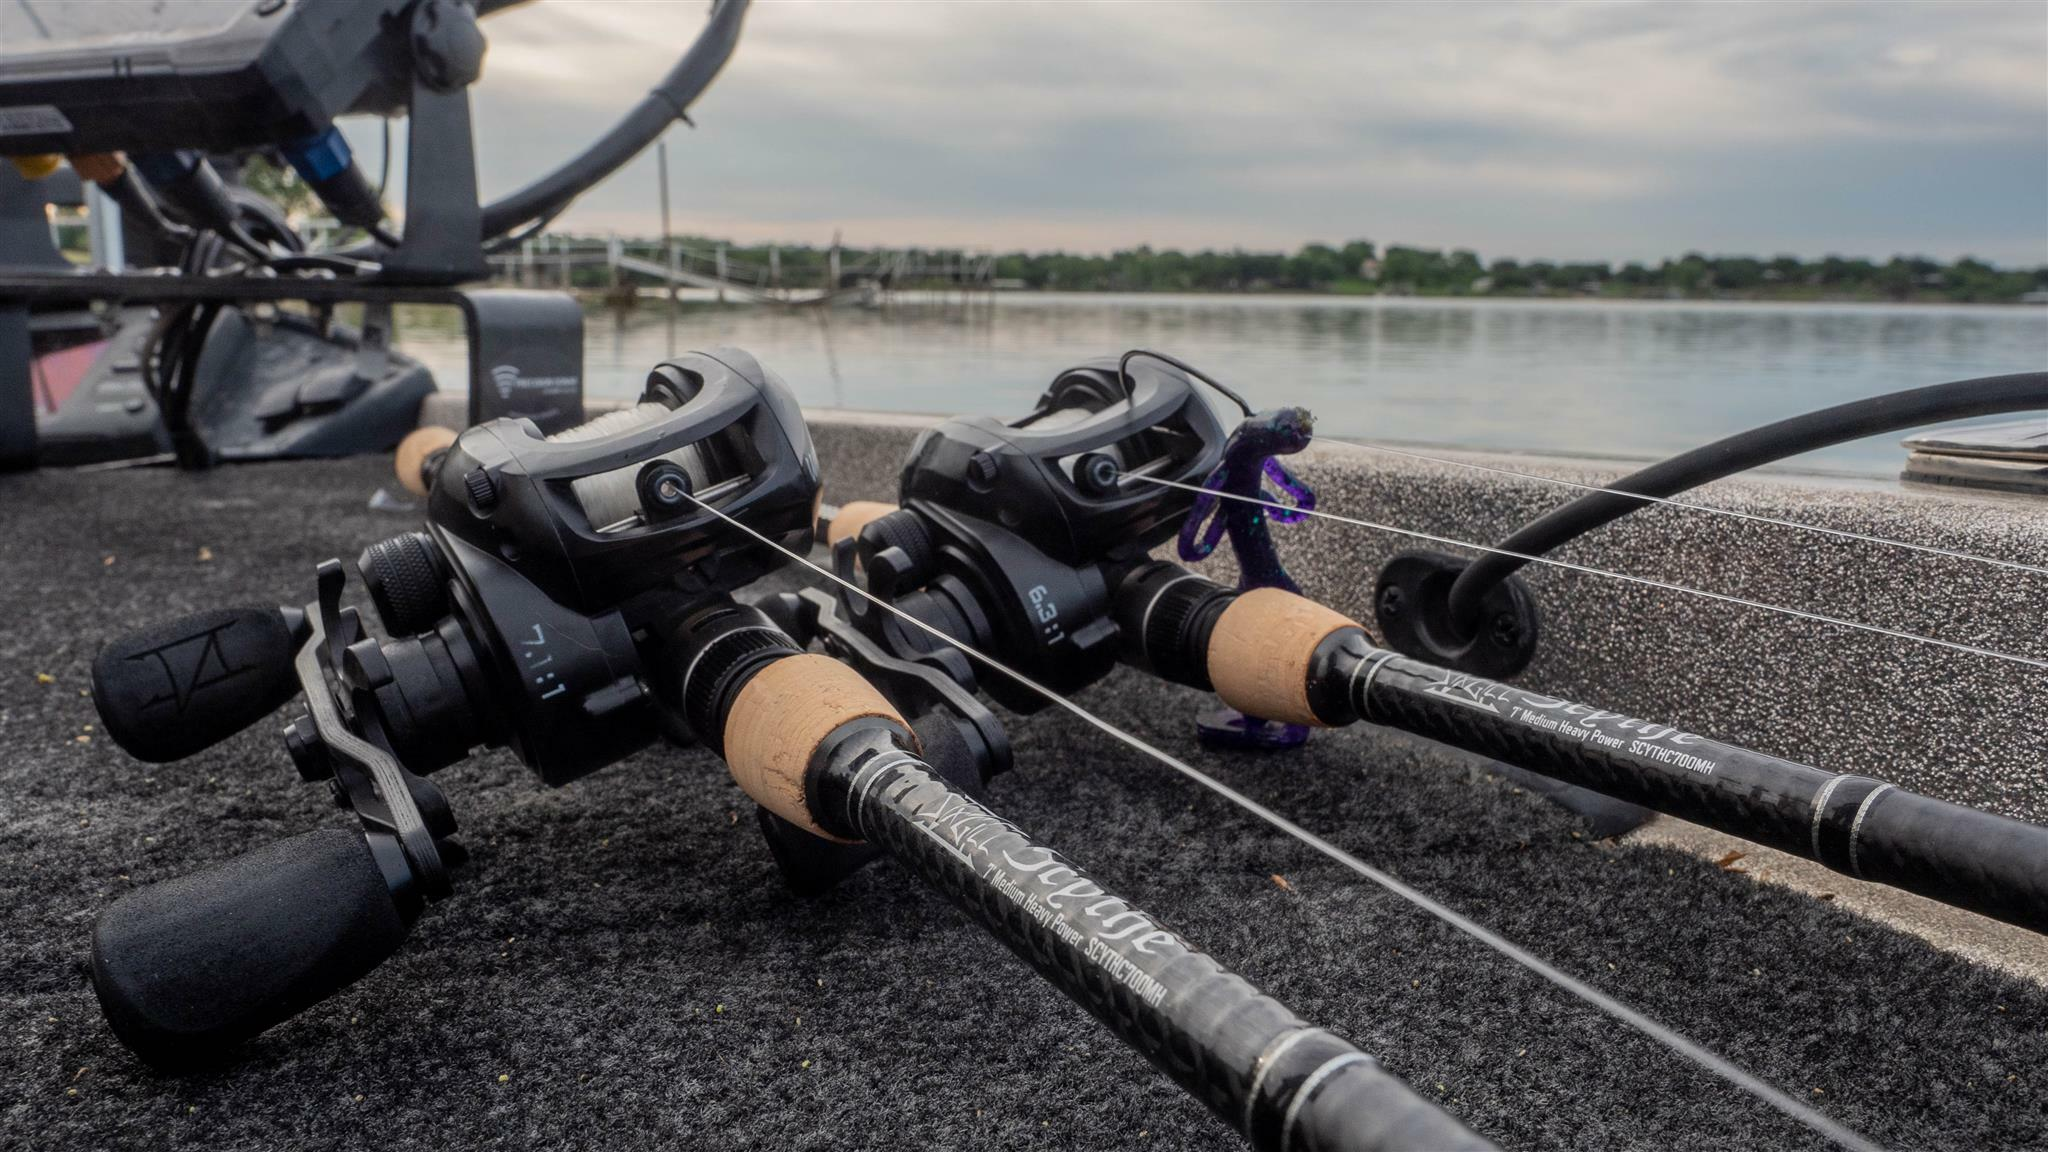 Fishing with our favorite gear